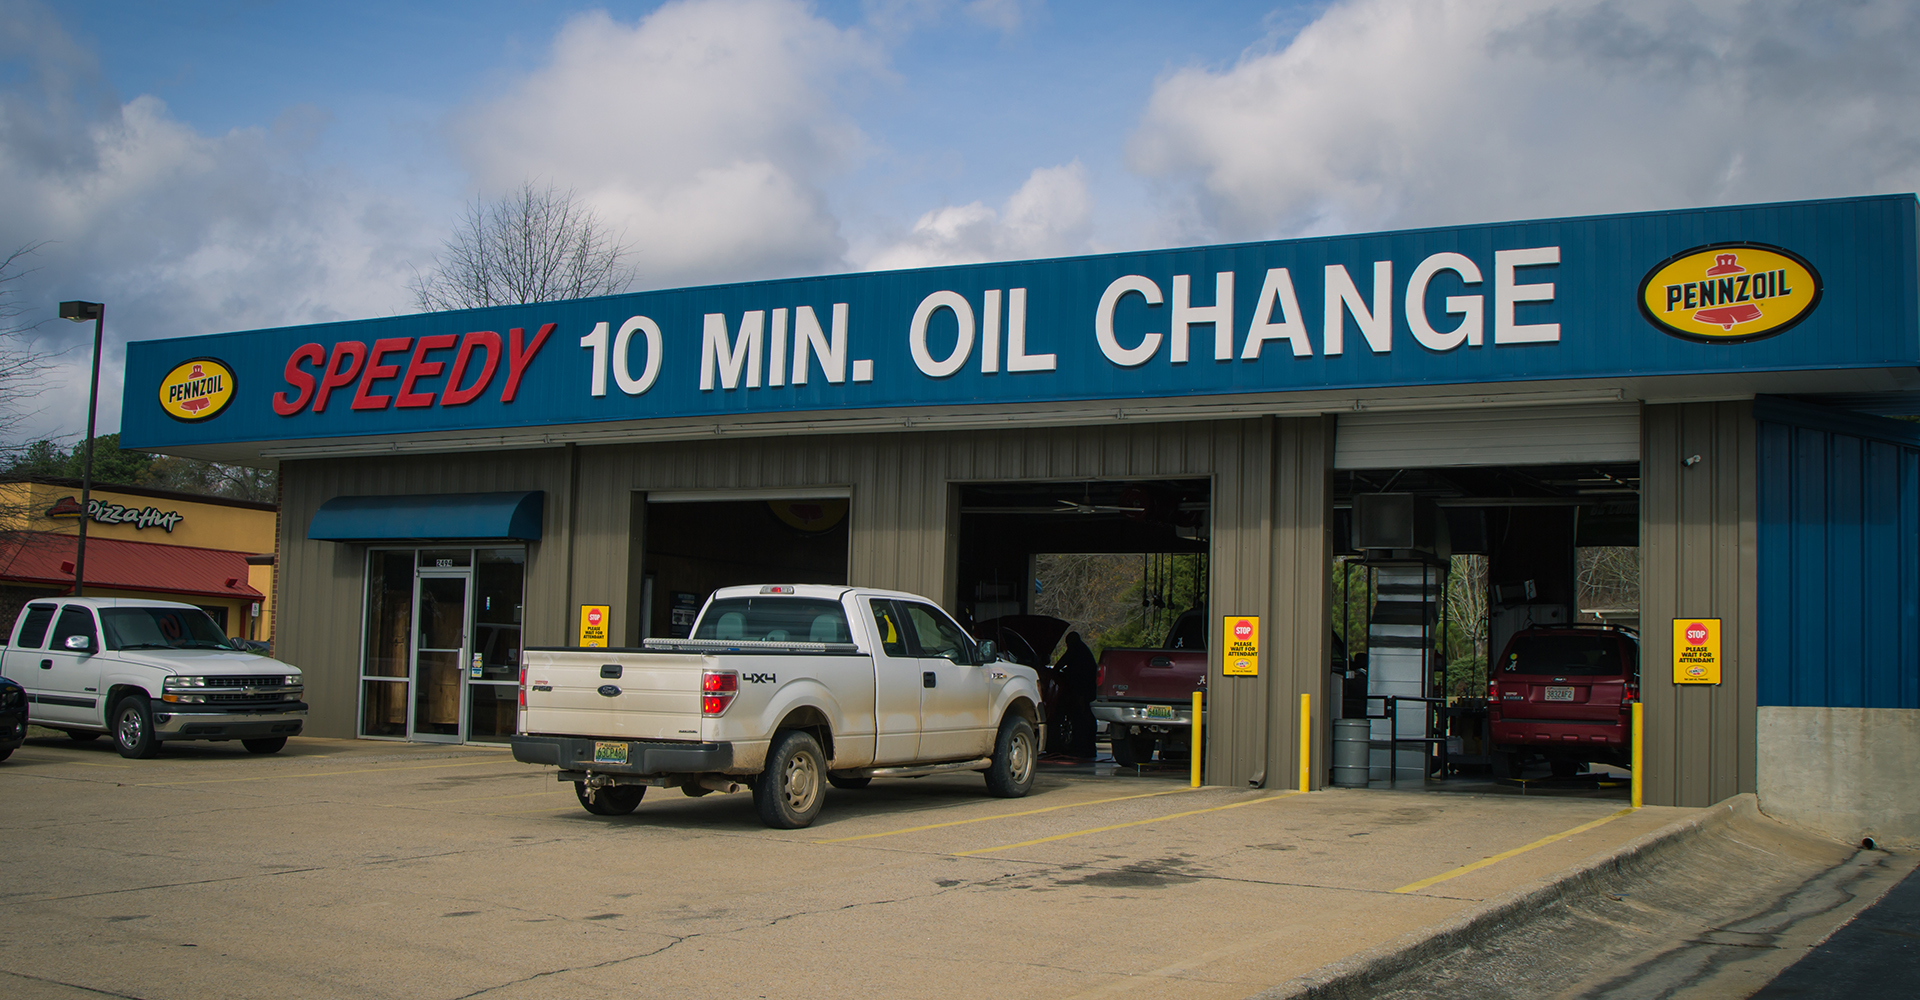 Speedy Oil Change Northport Al 35476 Tuscaloosa Al 35401